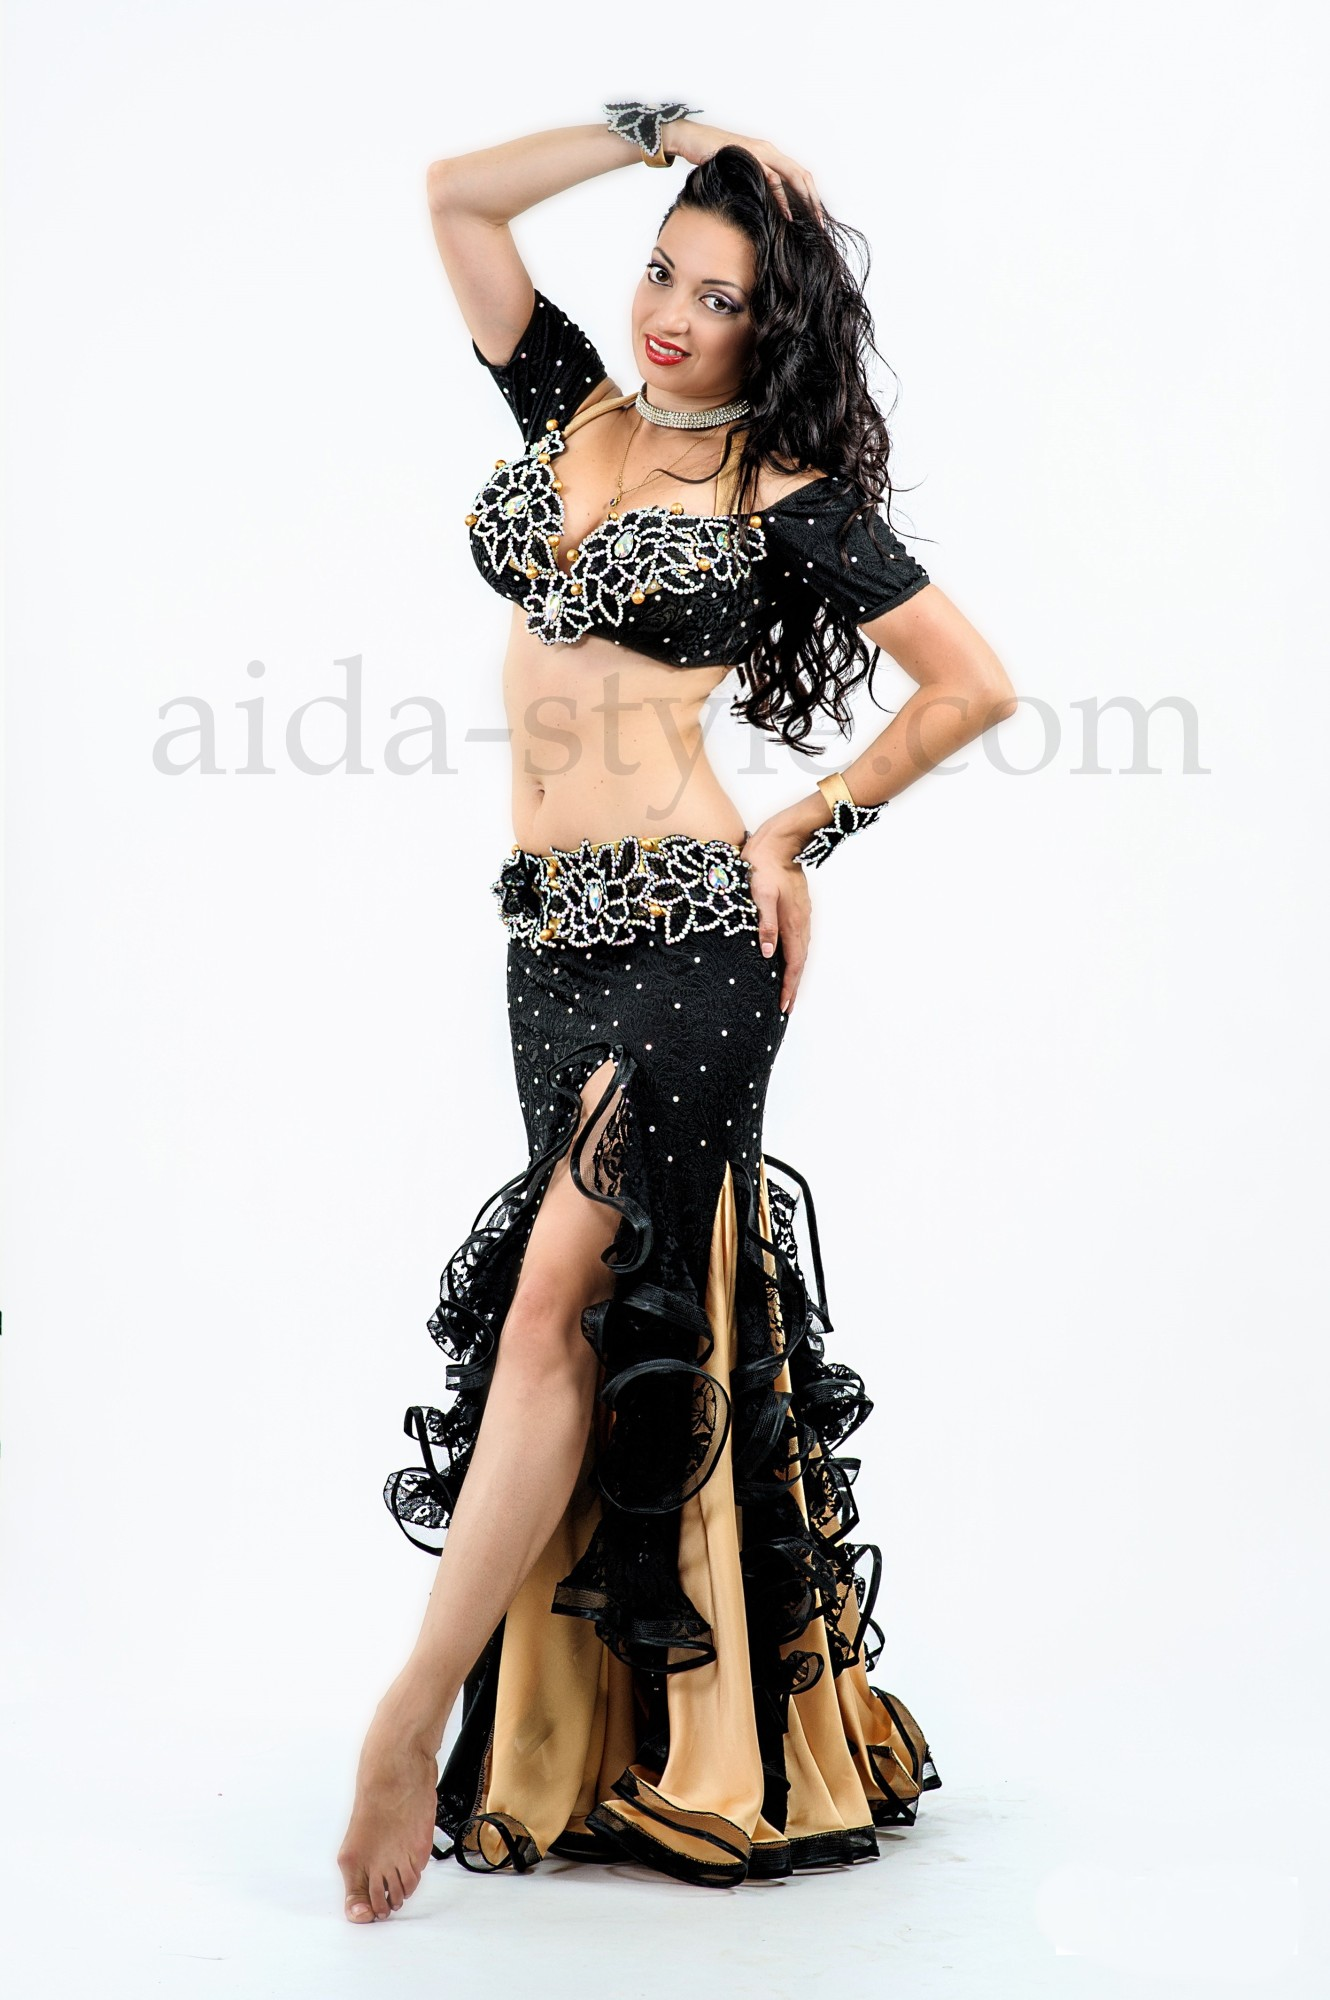 Black custom made professional belly dance outfit decorated with golden flounces